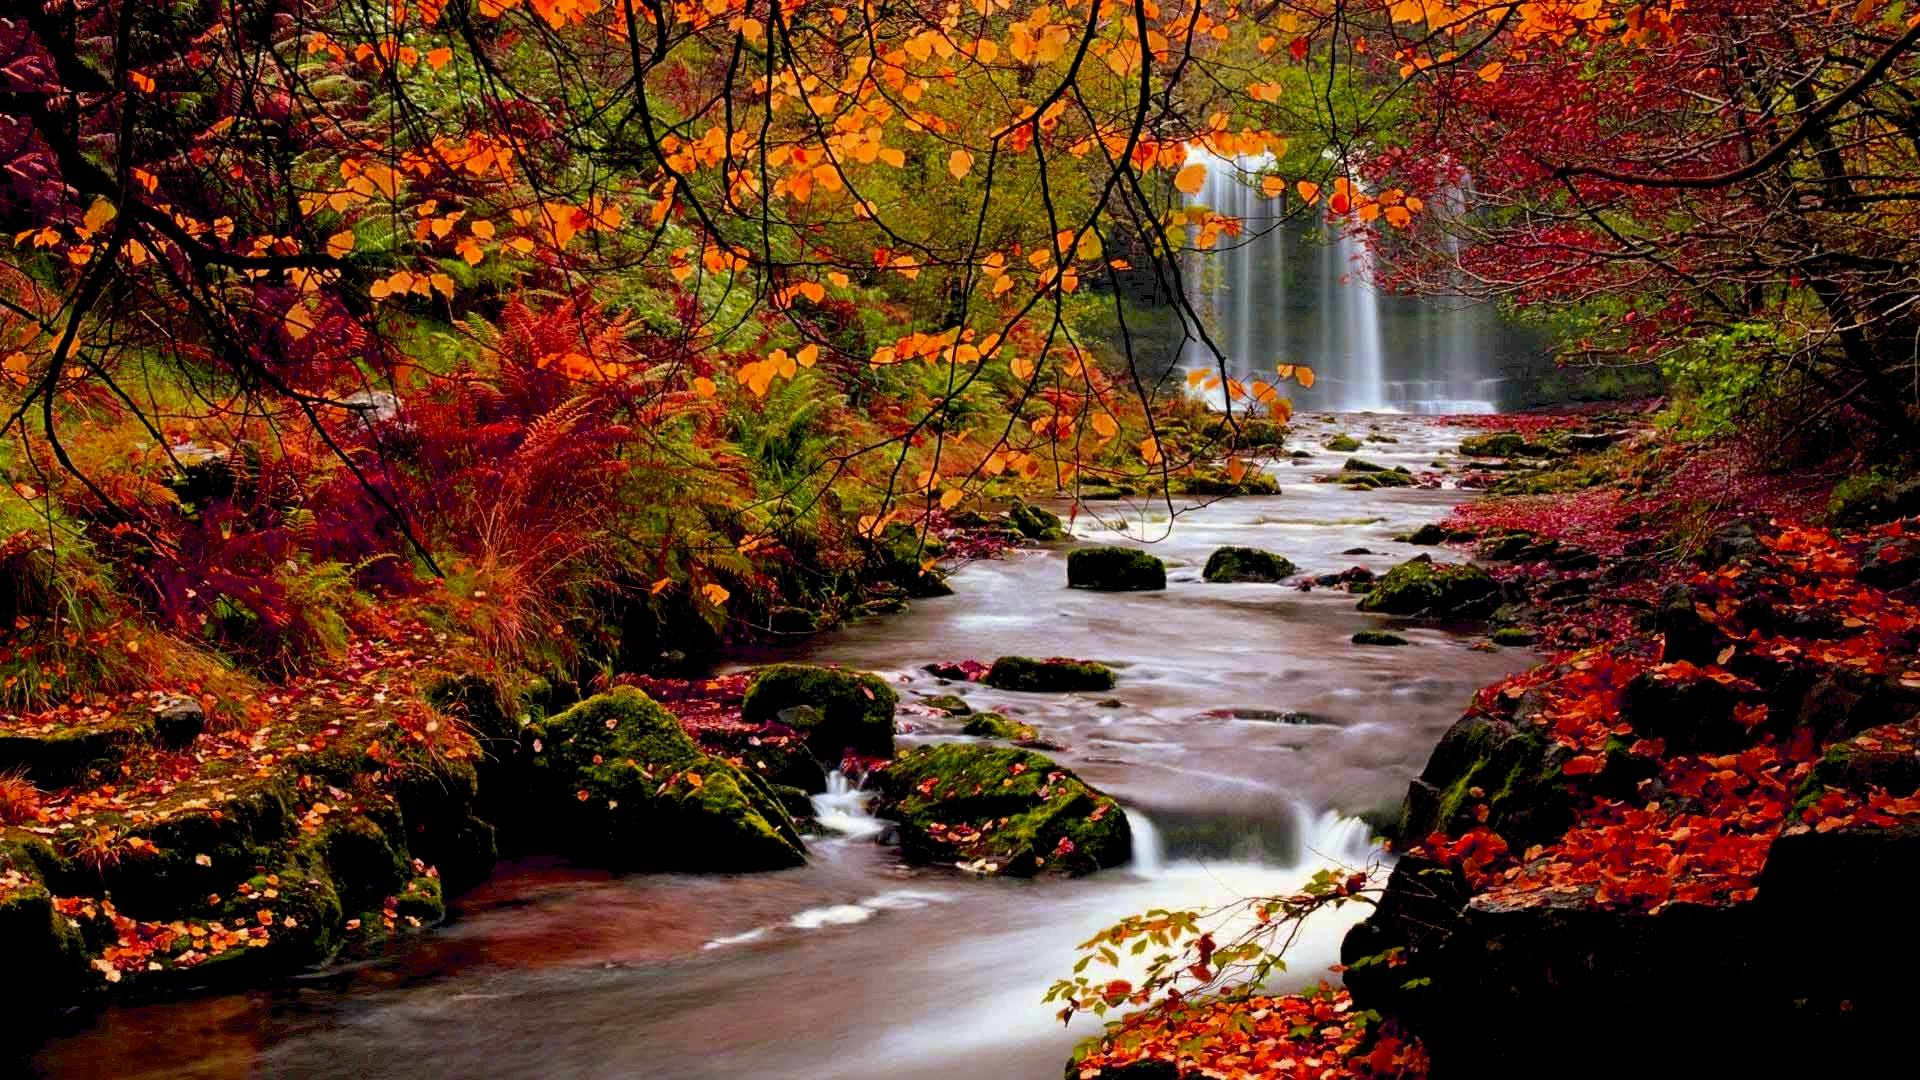 1366x768 hd desktop wallpapers country - photo #42